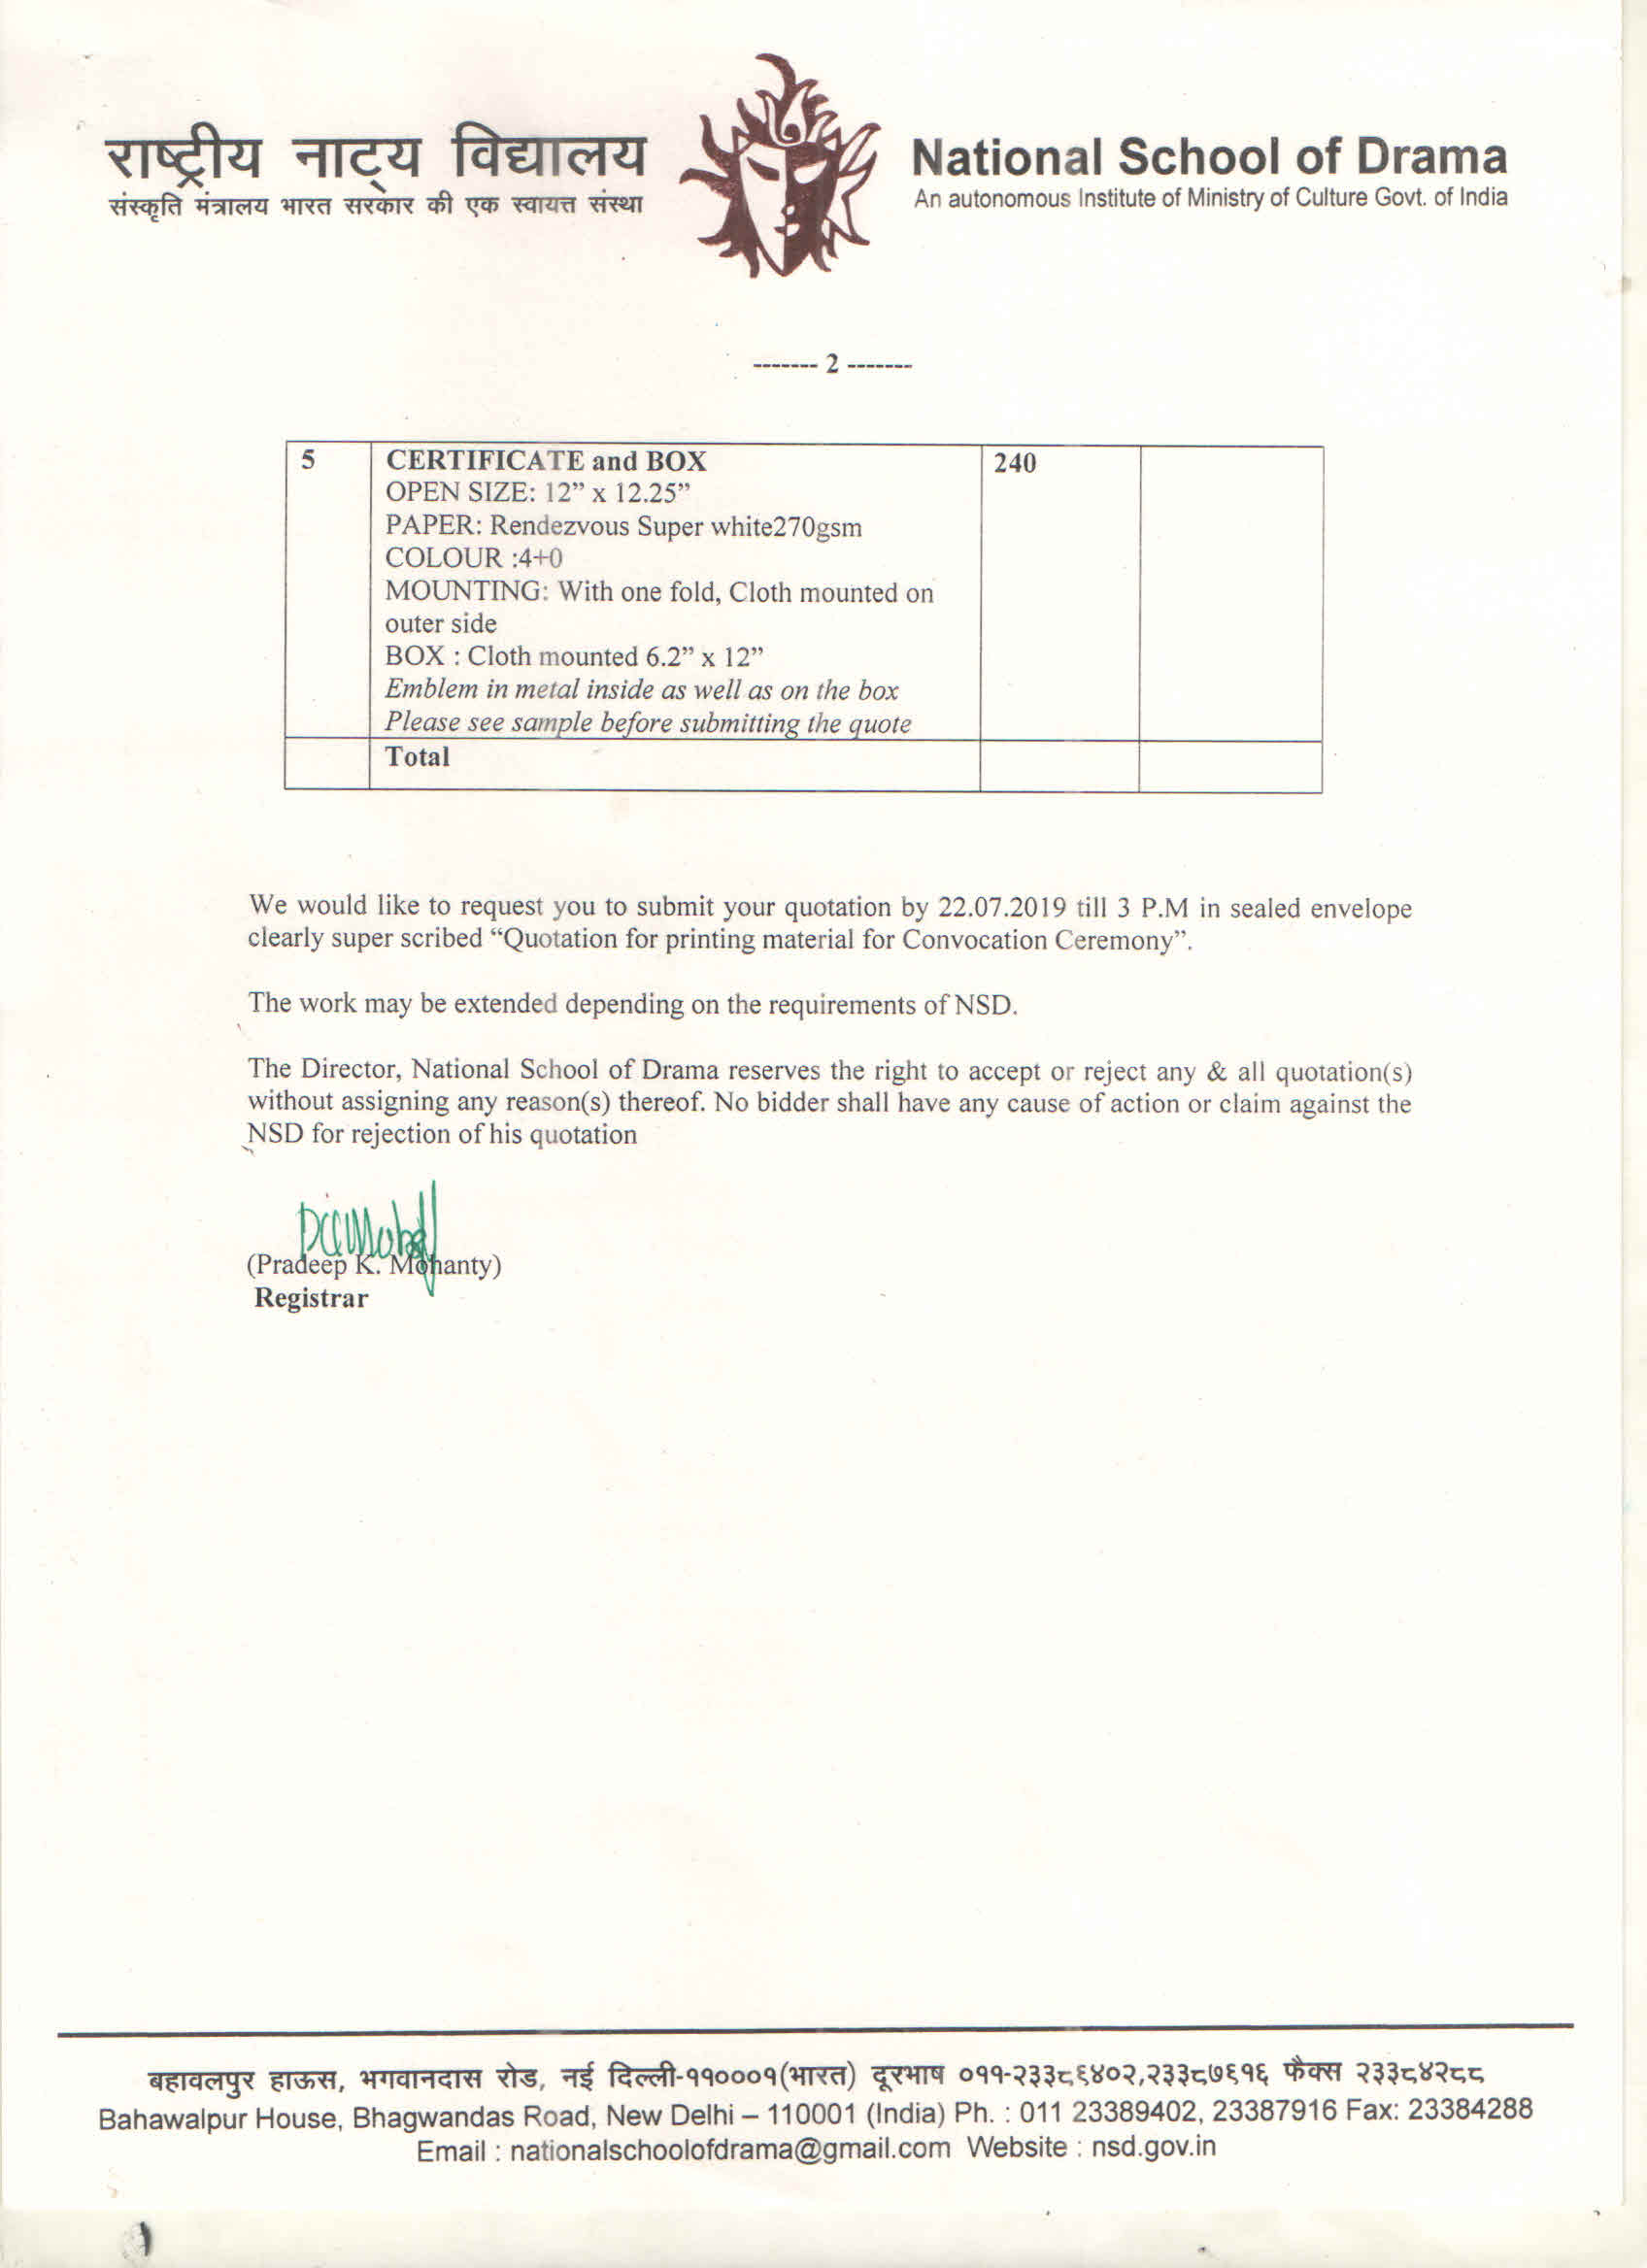 Quotation for printing material for Convocation Ceremony